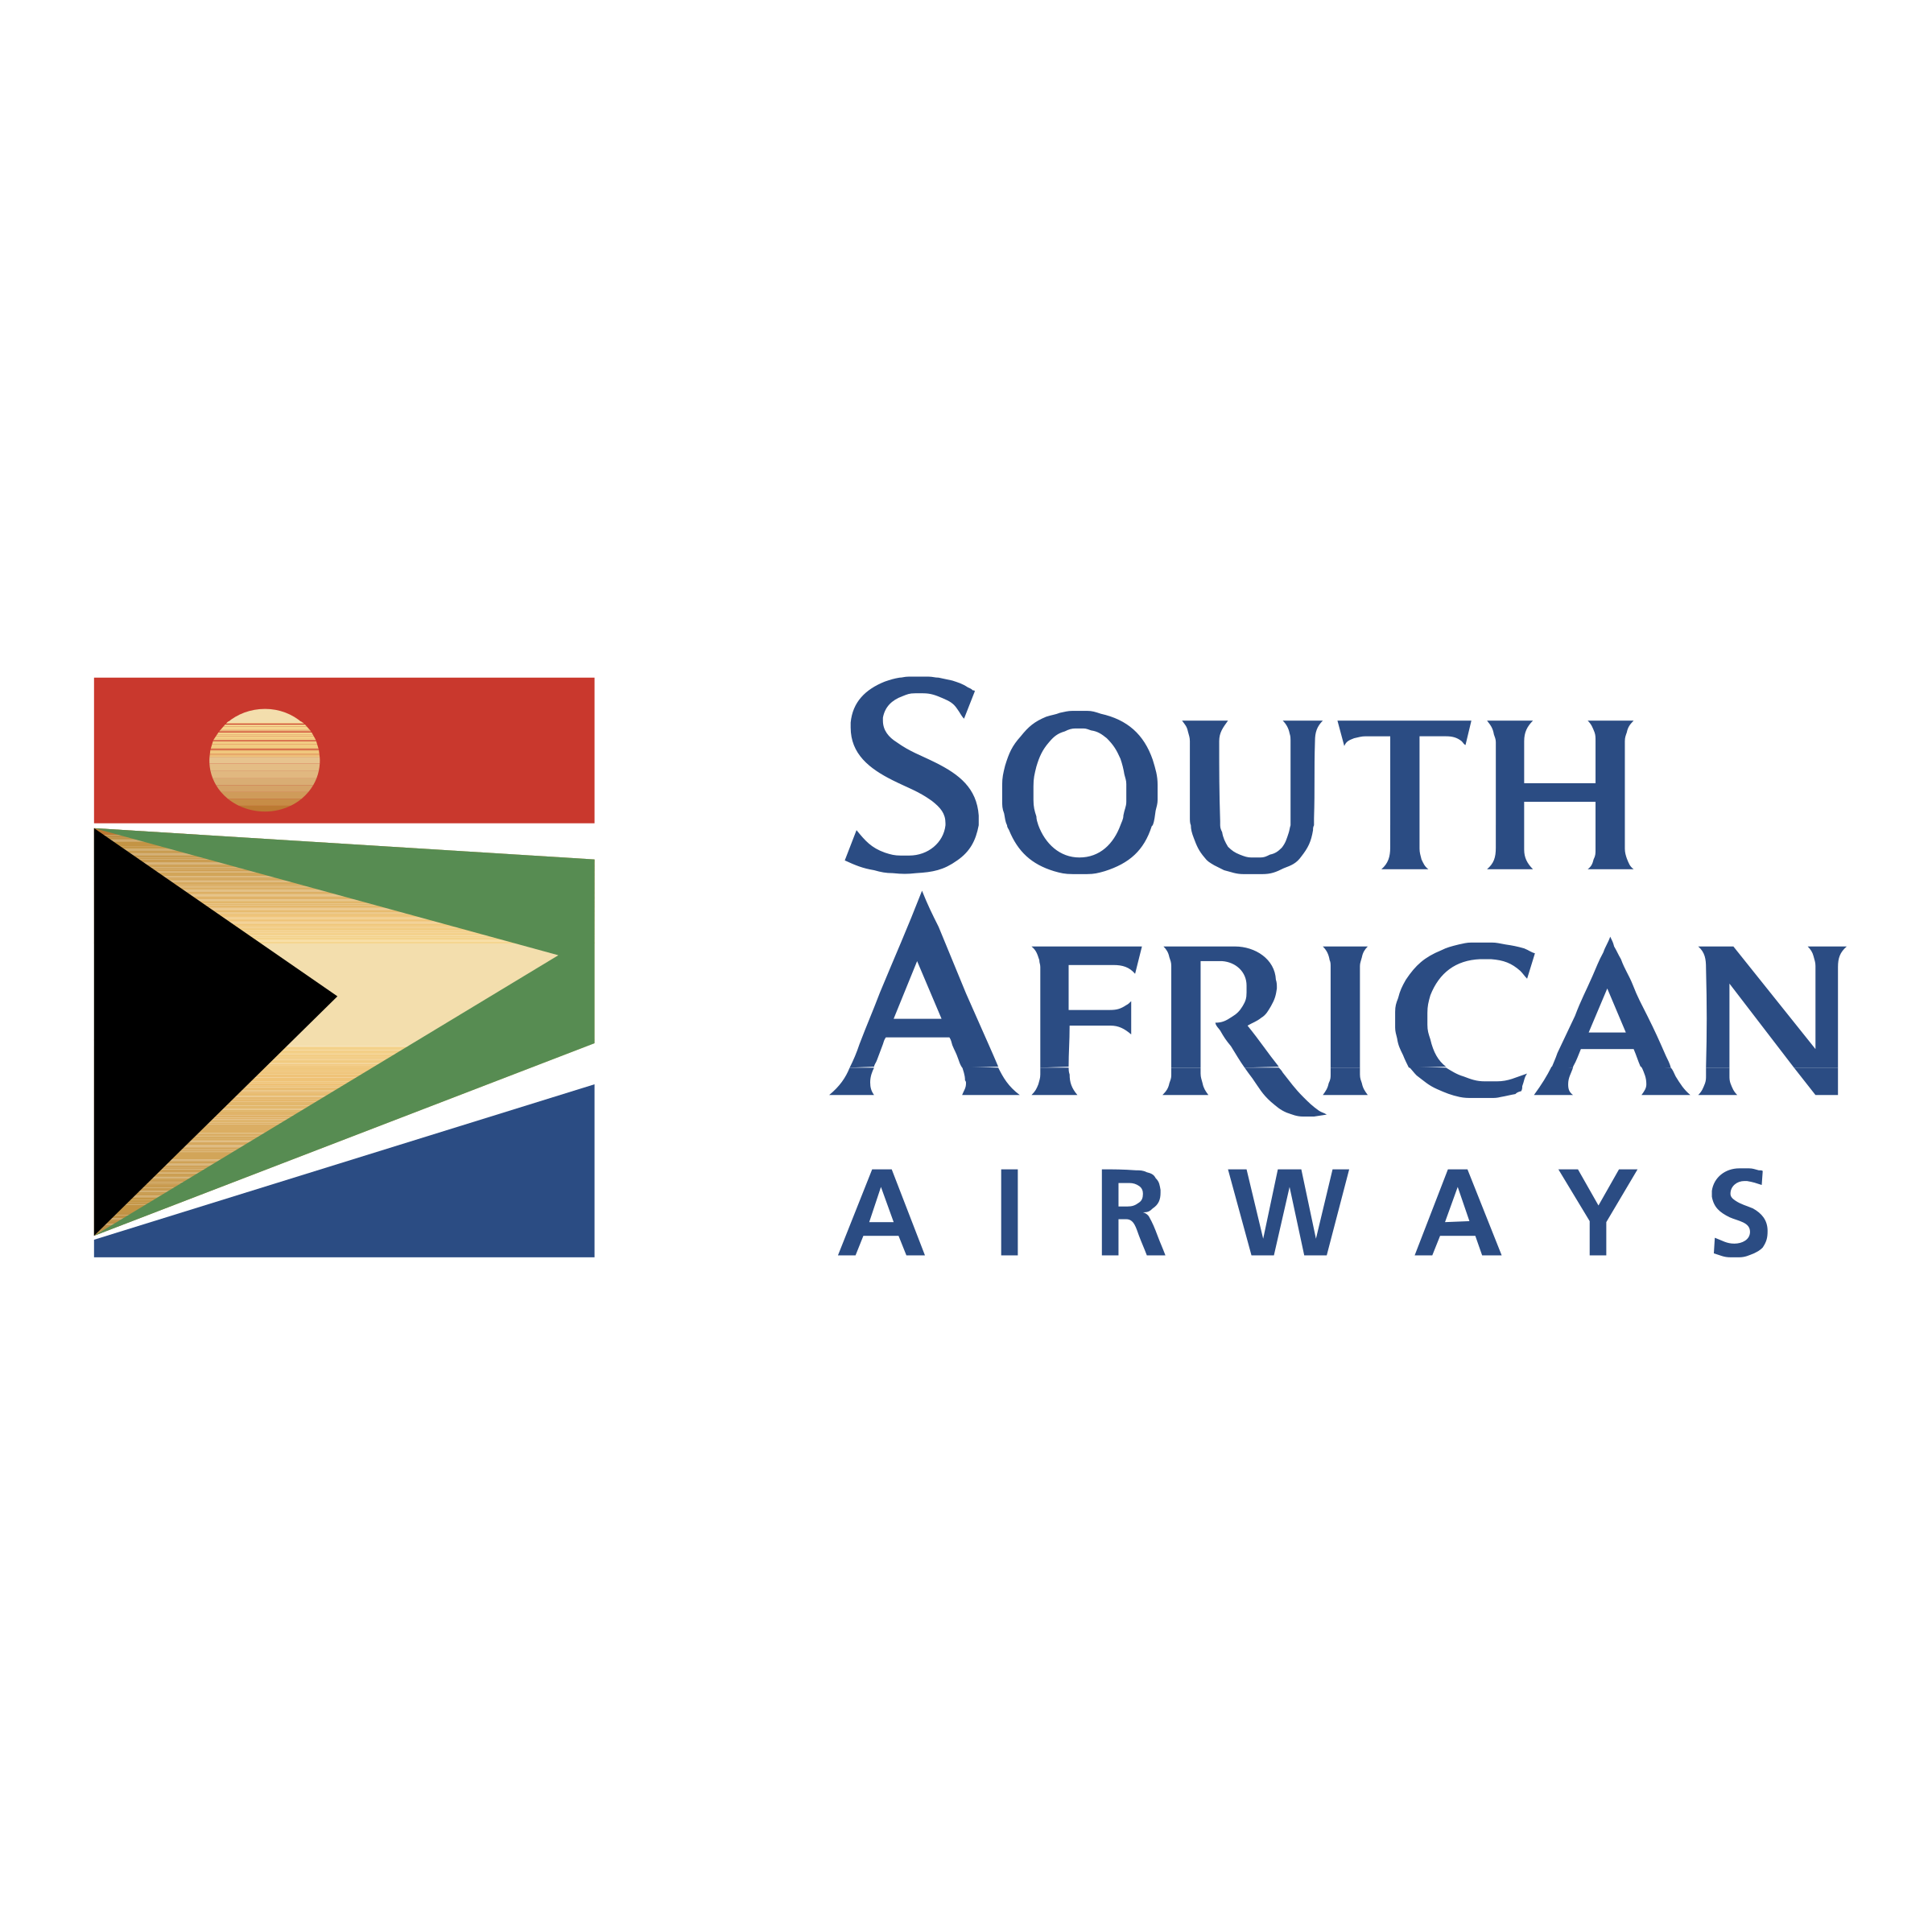 South African Airways Logo PNG Transparent & SVG Vector.